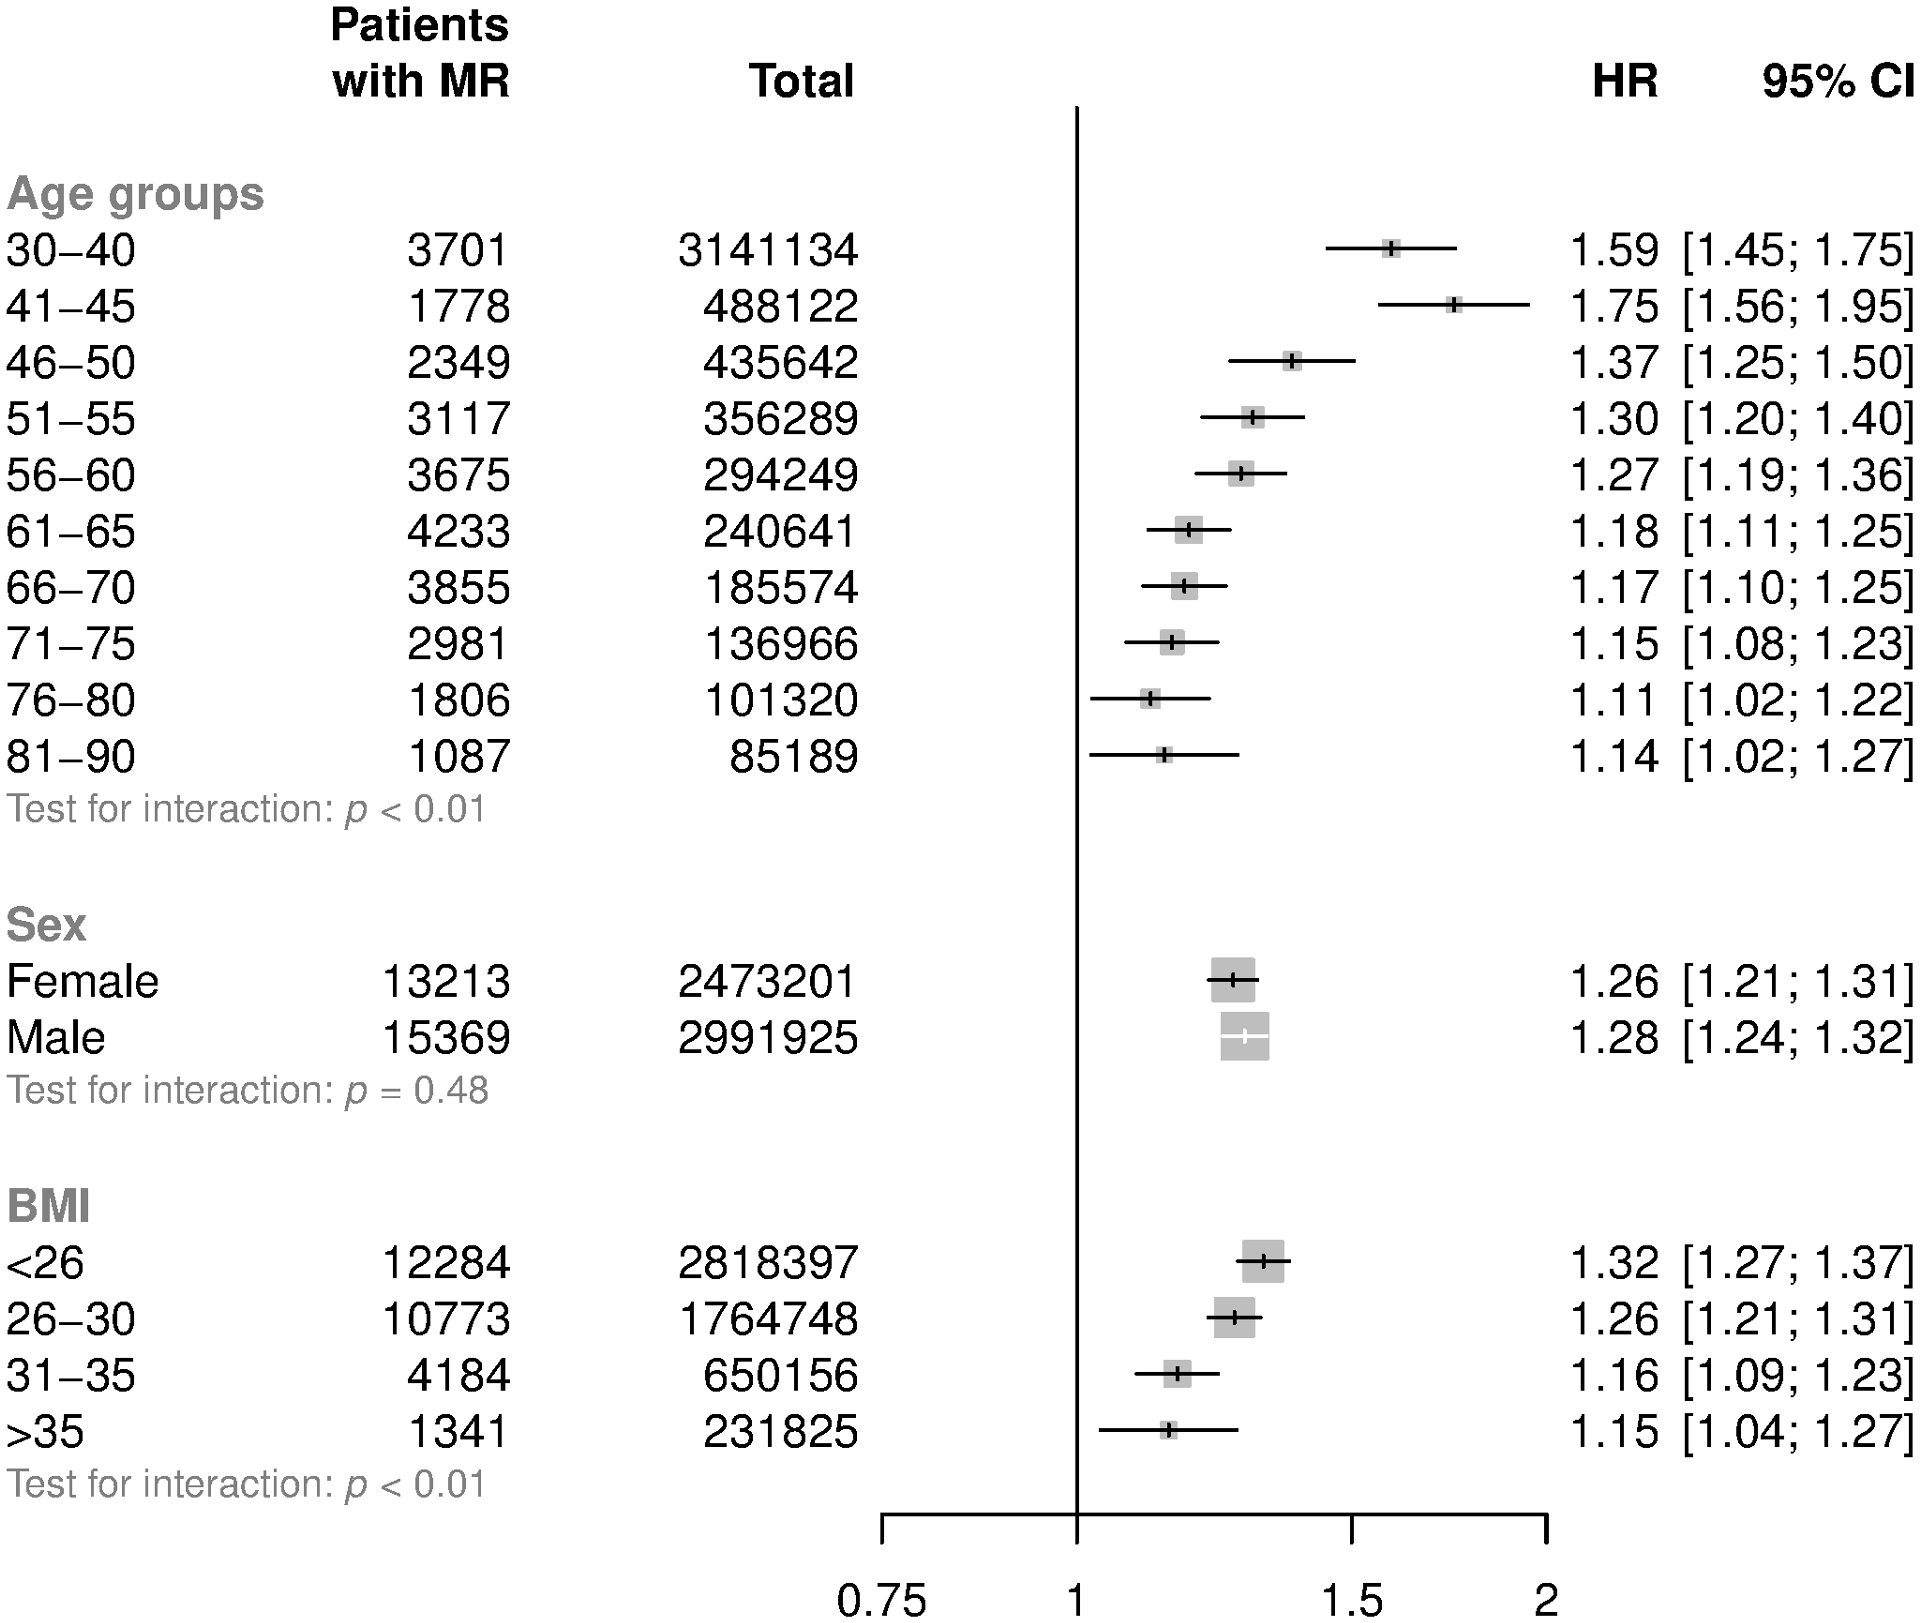 HRs for mitral regurgitation per 20 mmHg higher usual SBP by age, sex, and BMI categories.